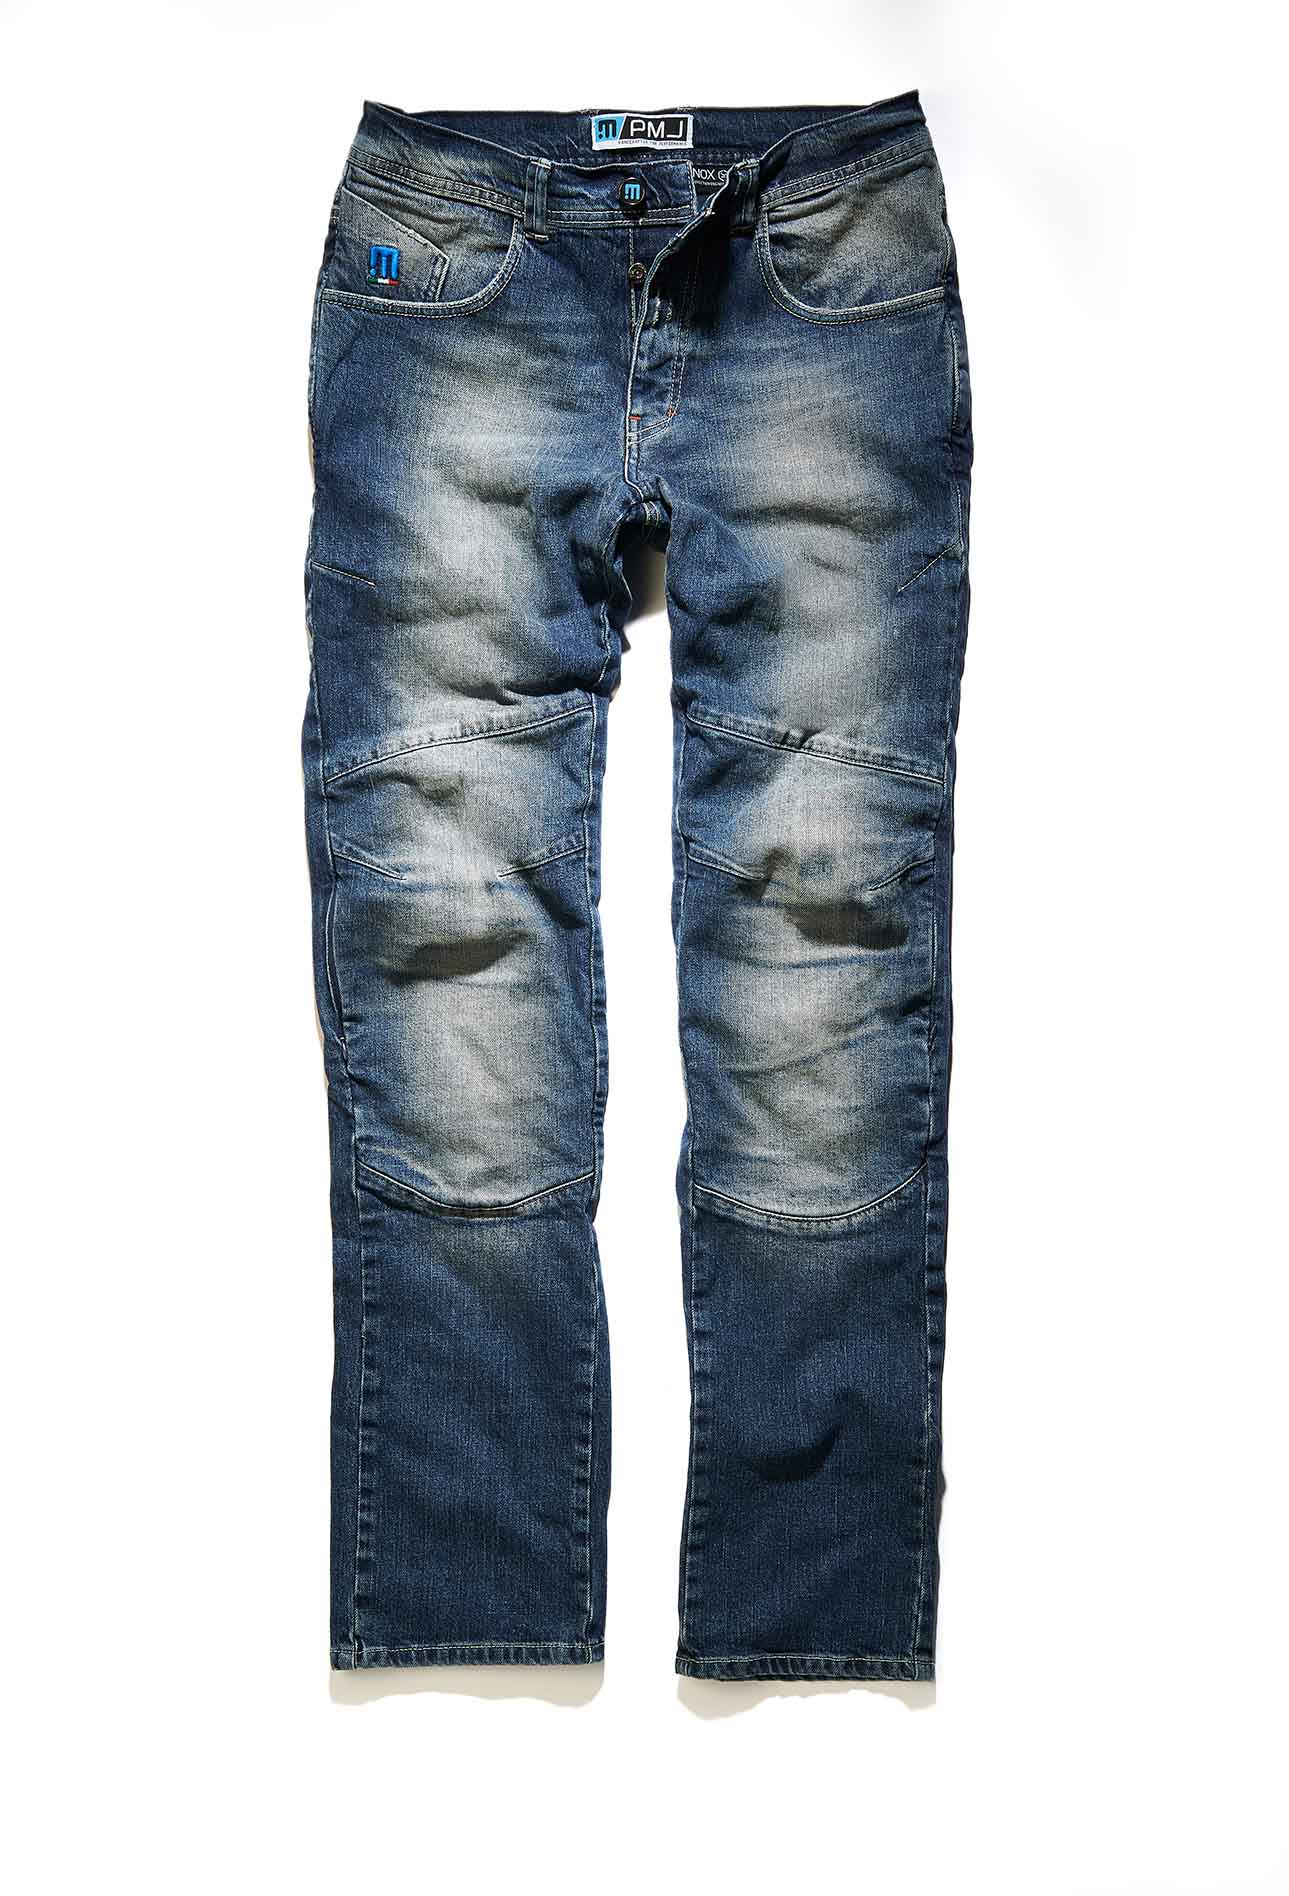 Chrome Burner coupon: Promo PMJ Vegas Denim Medio  7